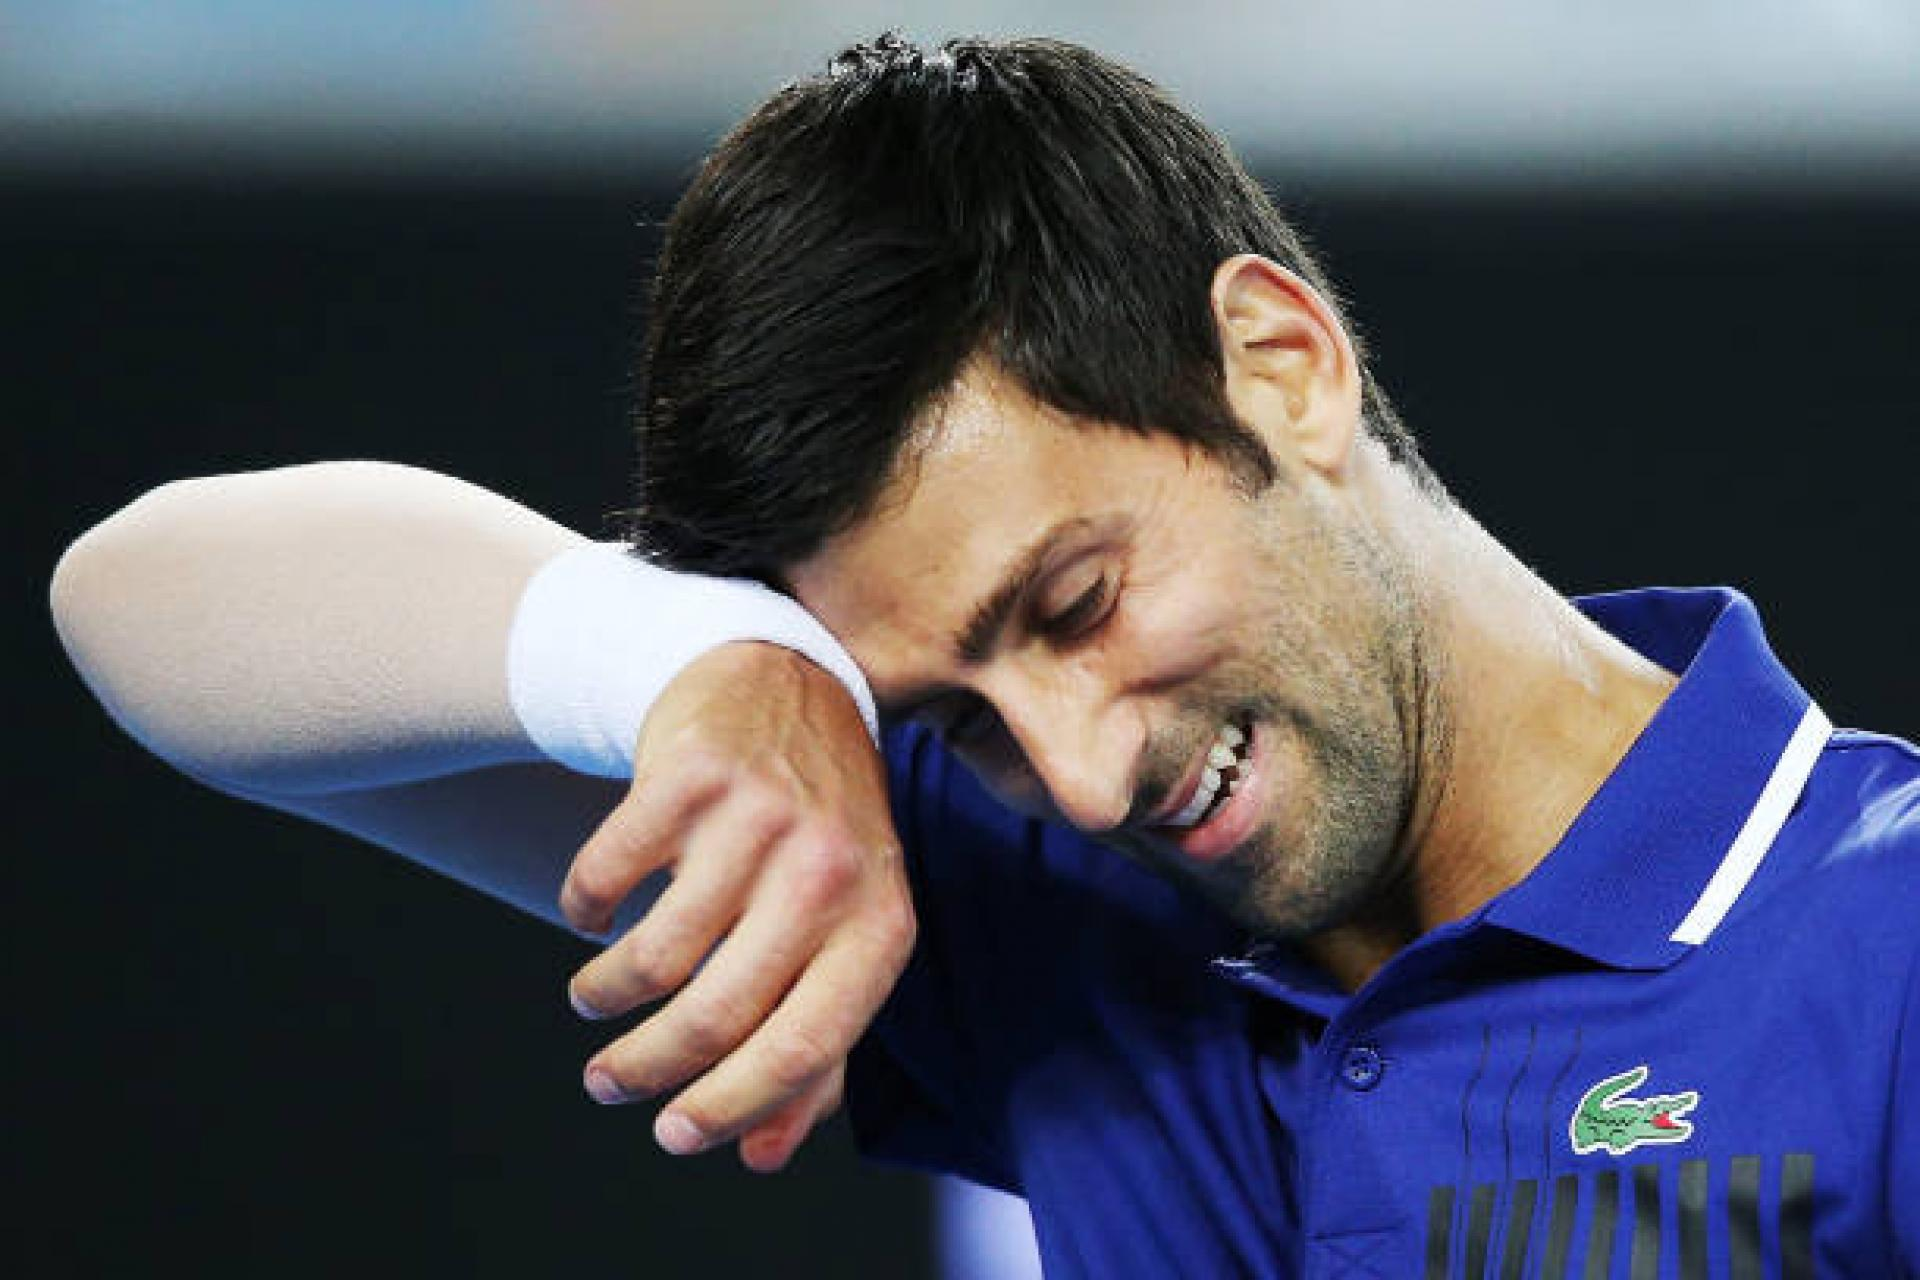 Not all the players back Novak Djokovic's thoughts, says ATP Insider